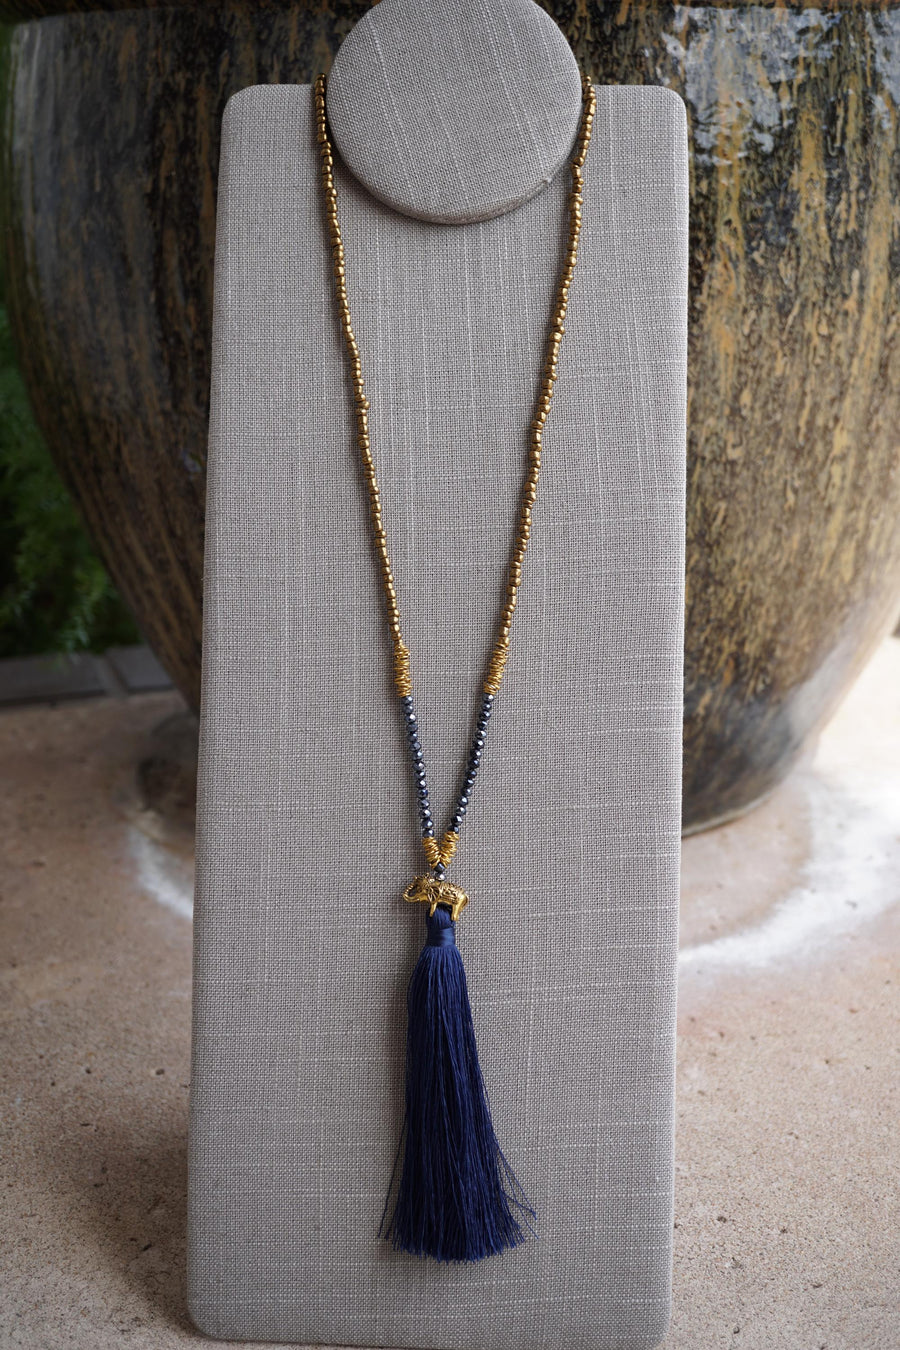 Elephant Tassel Necklace - Gold & Blue